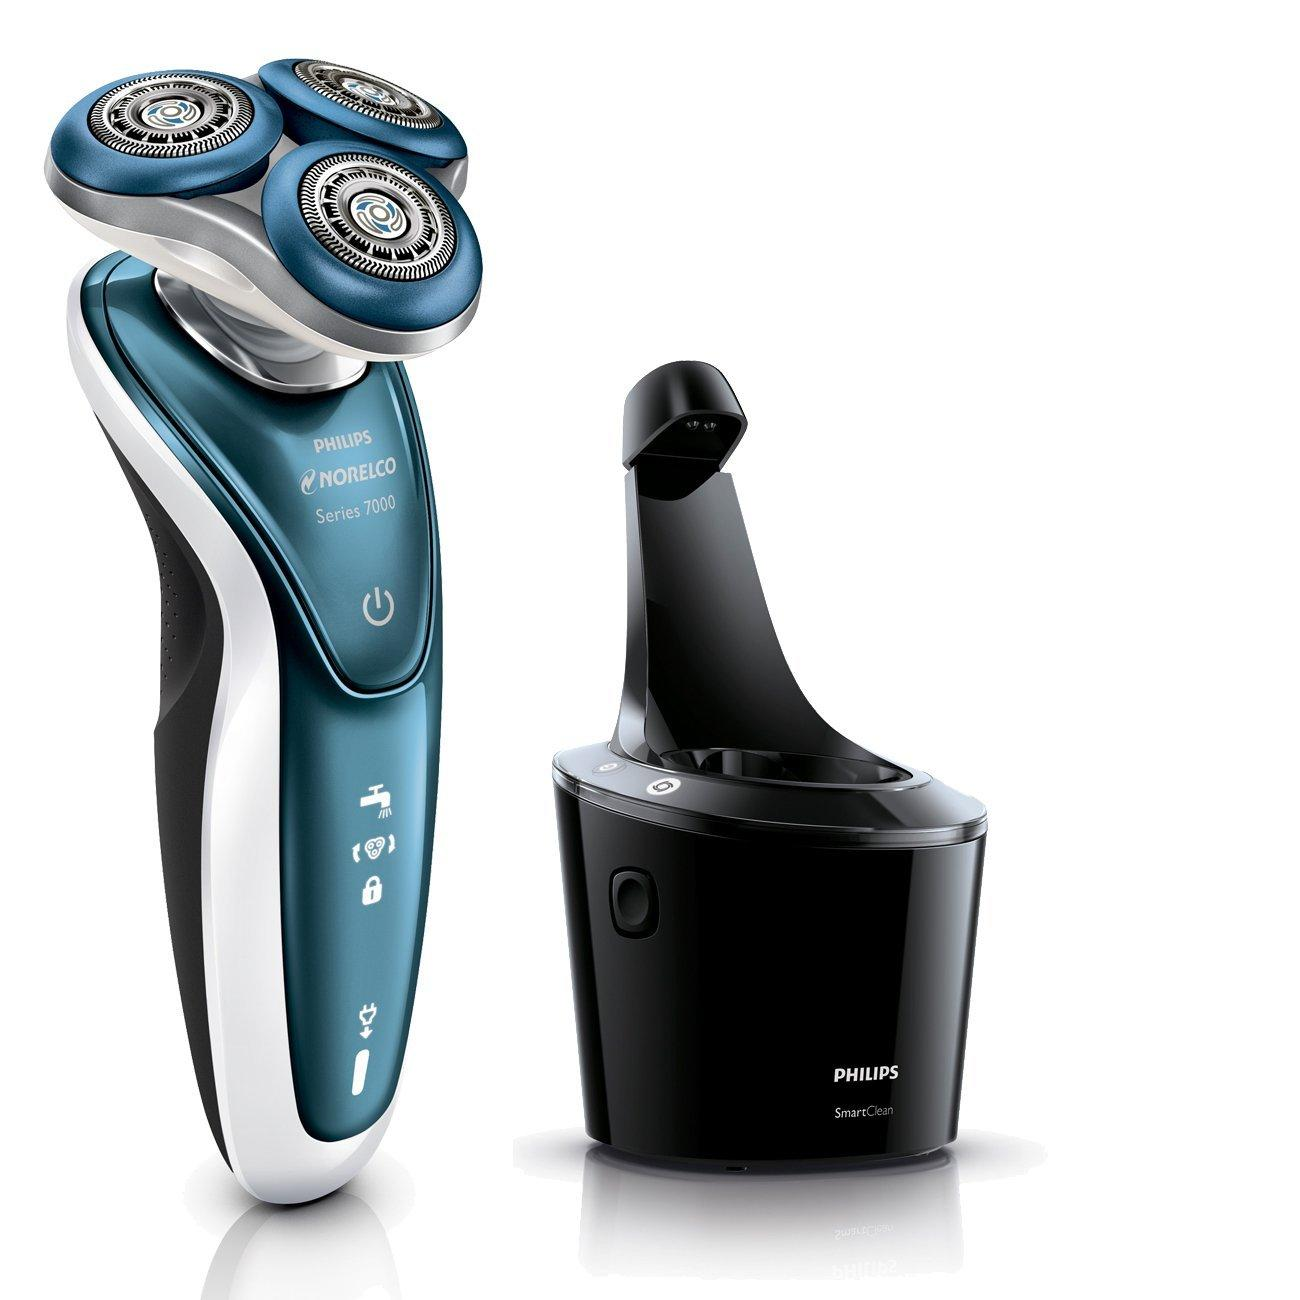 Philips Norelco Shaver 7300 for Sensitive Skin, S7370/87, Frustration Free Packaging